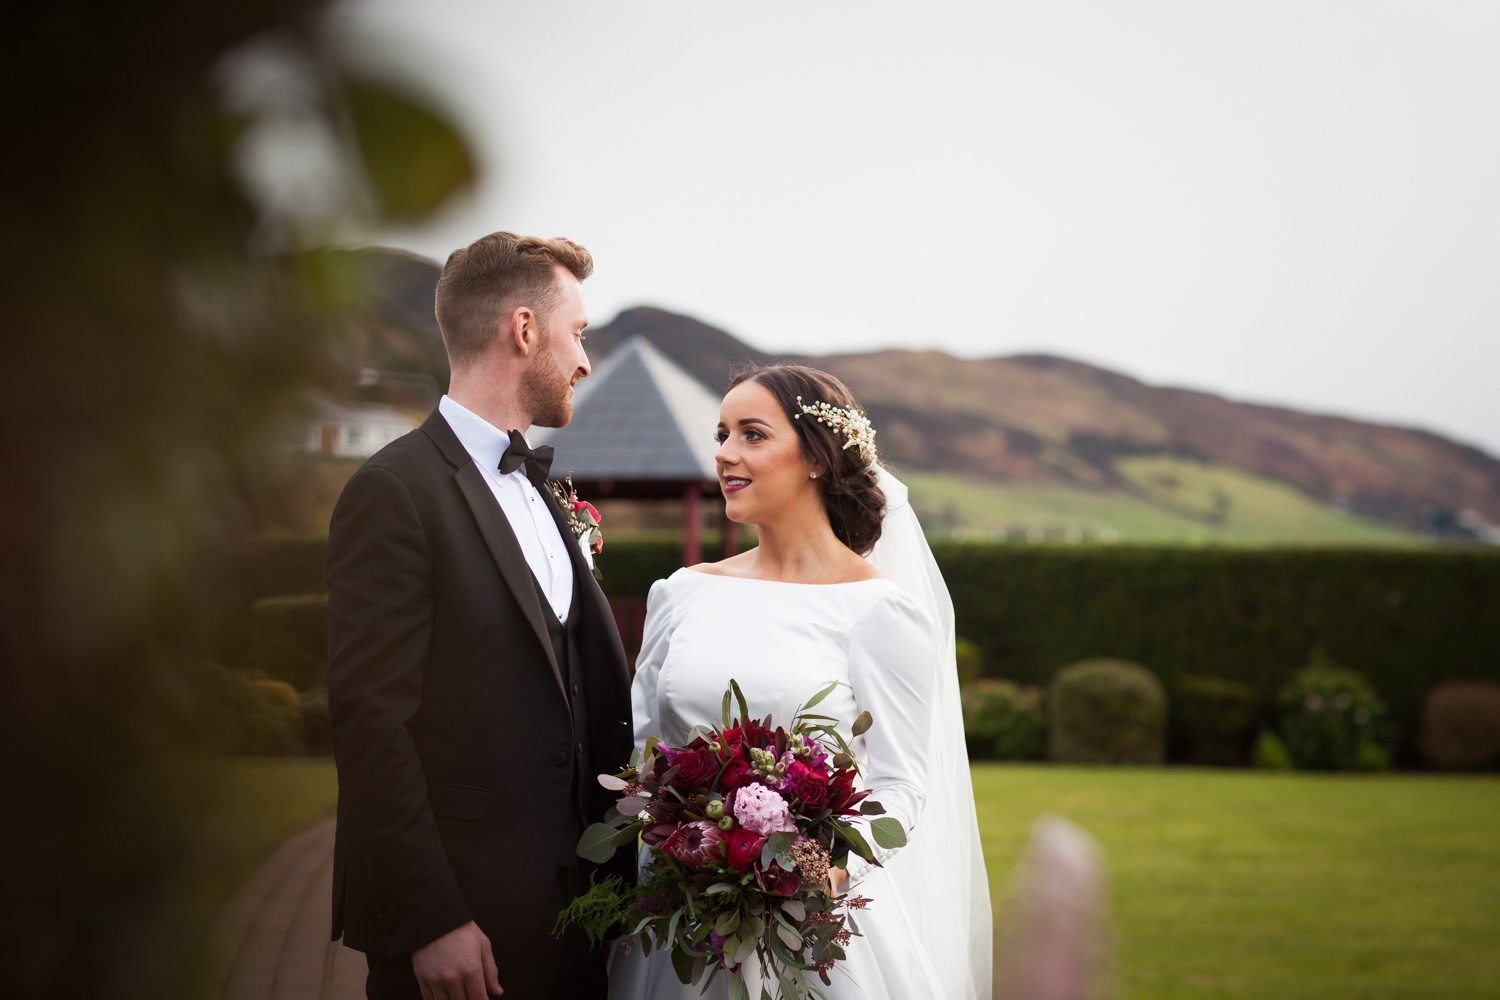 Mark_Barnes_Northern_Ireland_wedding_photographer_Innishowen_Gateway_Donegal_Wedding_photography_Donegal_wedding_photographer-48.jpg